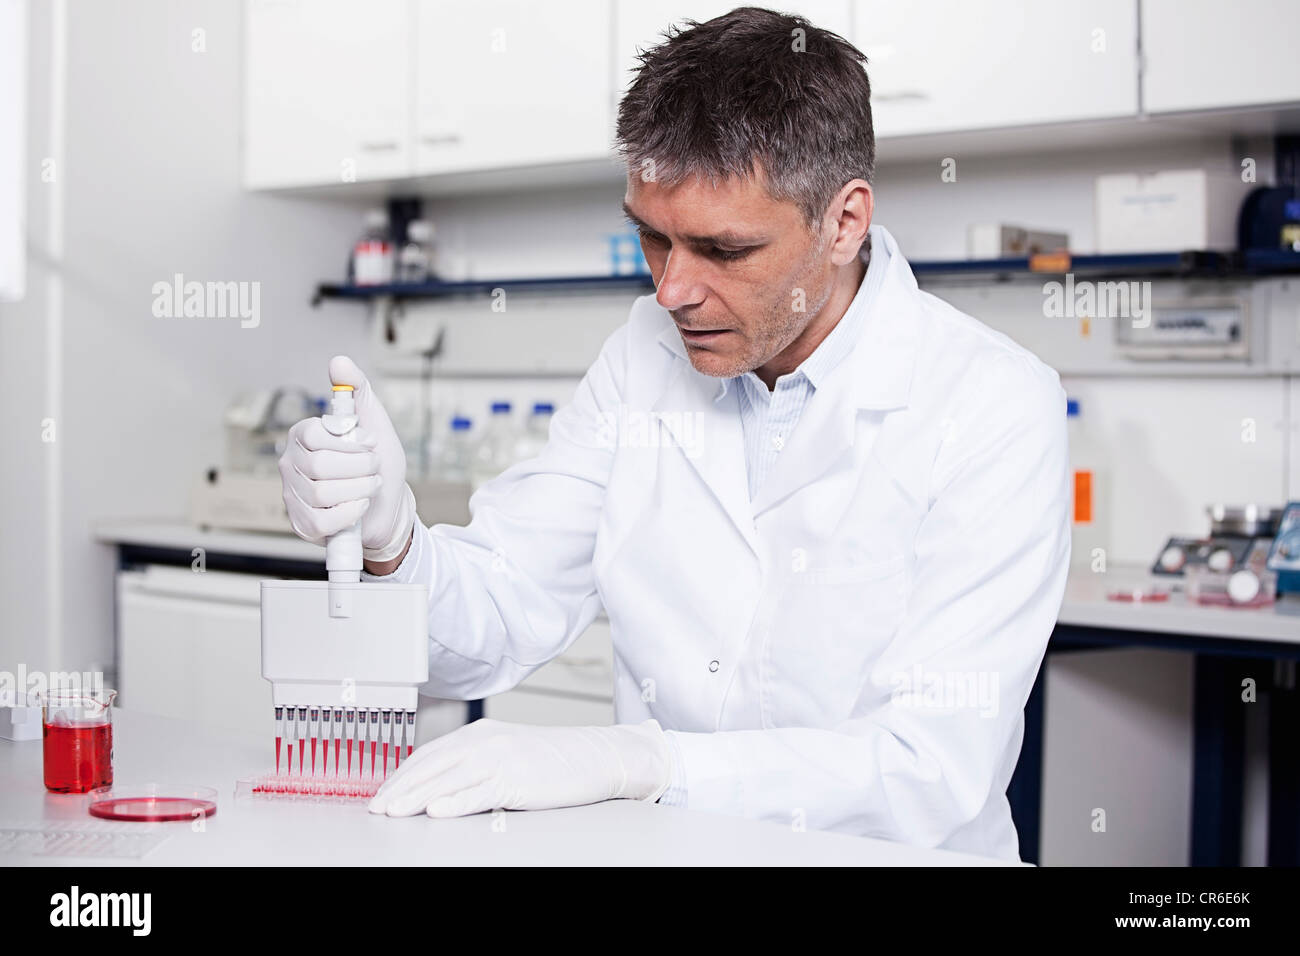 Germany, Bavaria, Munich, Scientist pouring red liquid with pipette in test tray for medical research in laboratory - Stock Image